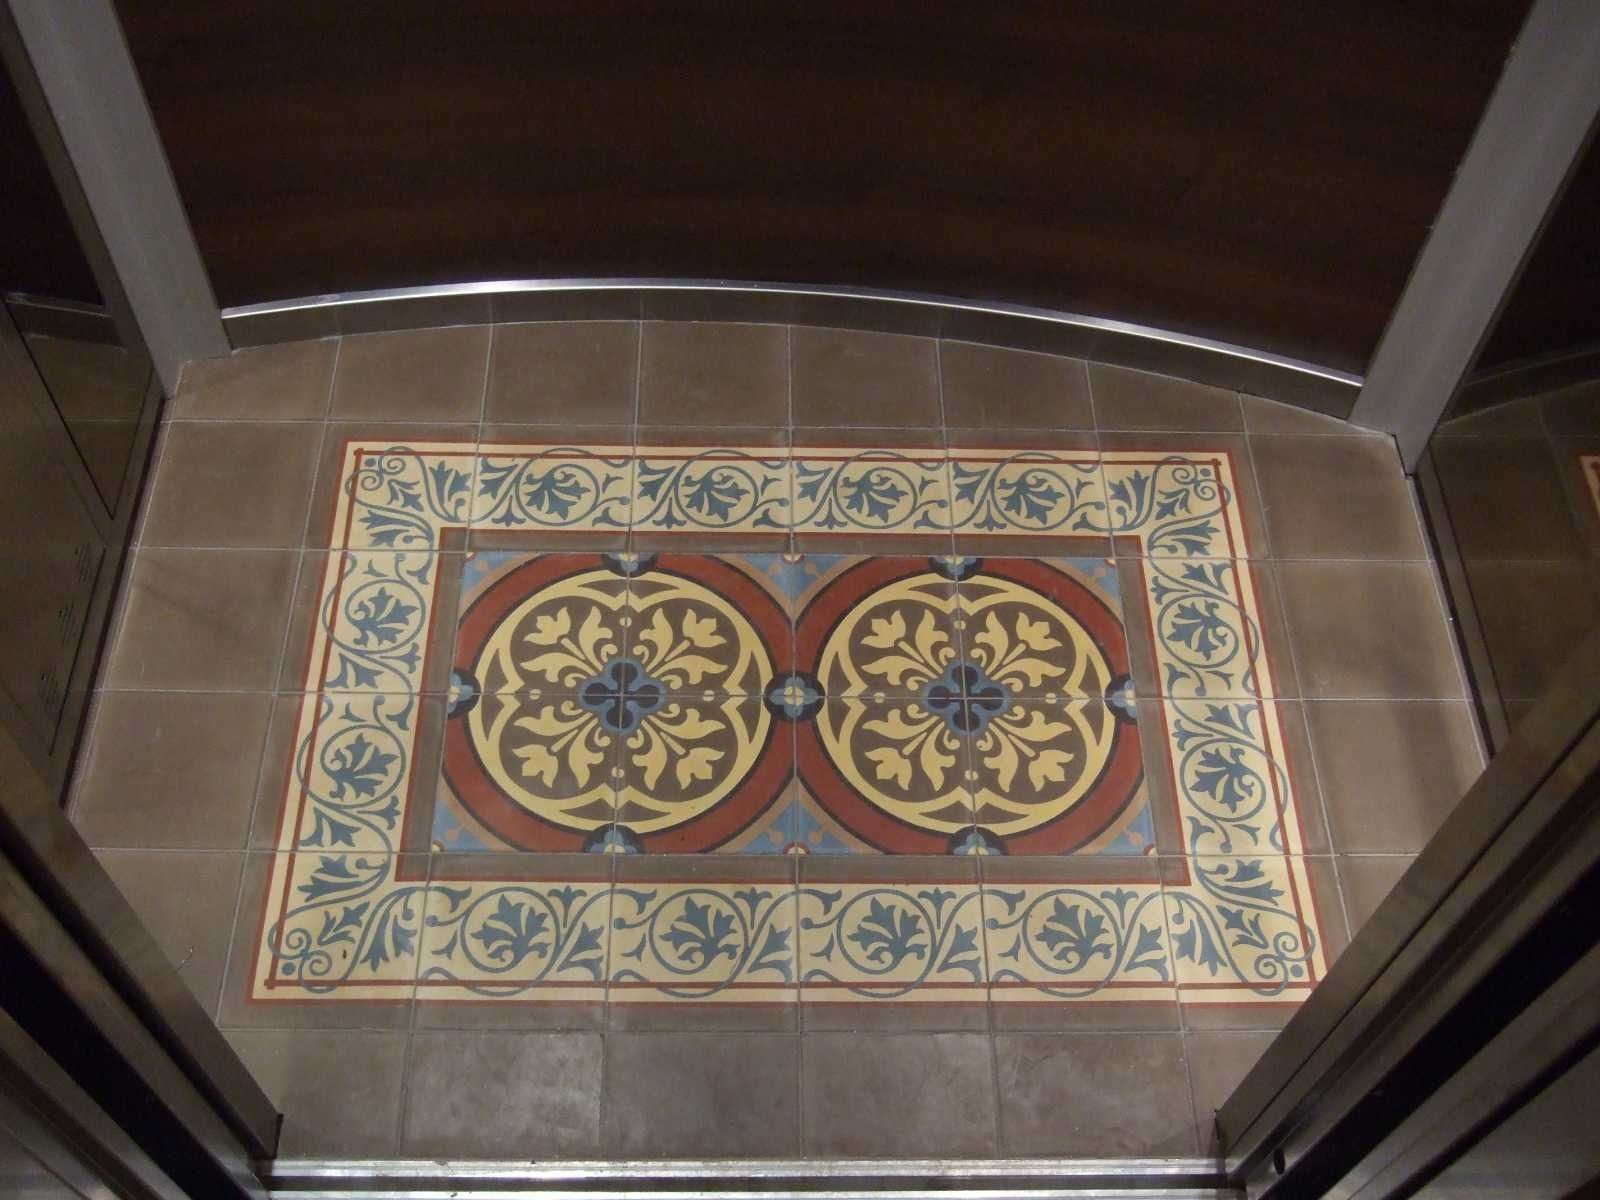 #Encaustic handmade cement tile , #Saigon tiles, #Hanoi cement tile , #traditional cement tiles , #vietnam cement tile, #floor cement tile, #walling tile, indoor tiles, kitchen tiles, #hydraulic cement tiles , patterned tiles, #pressed cement tiles , #morocco tile